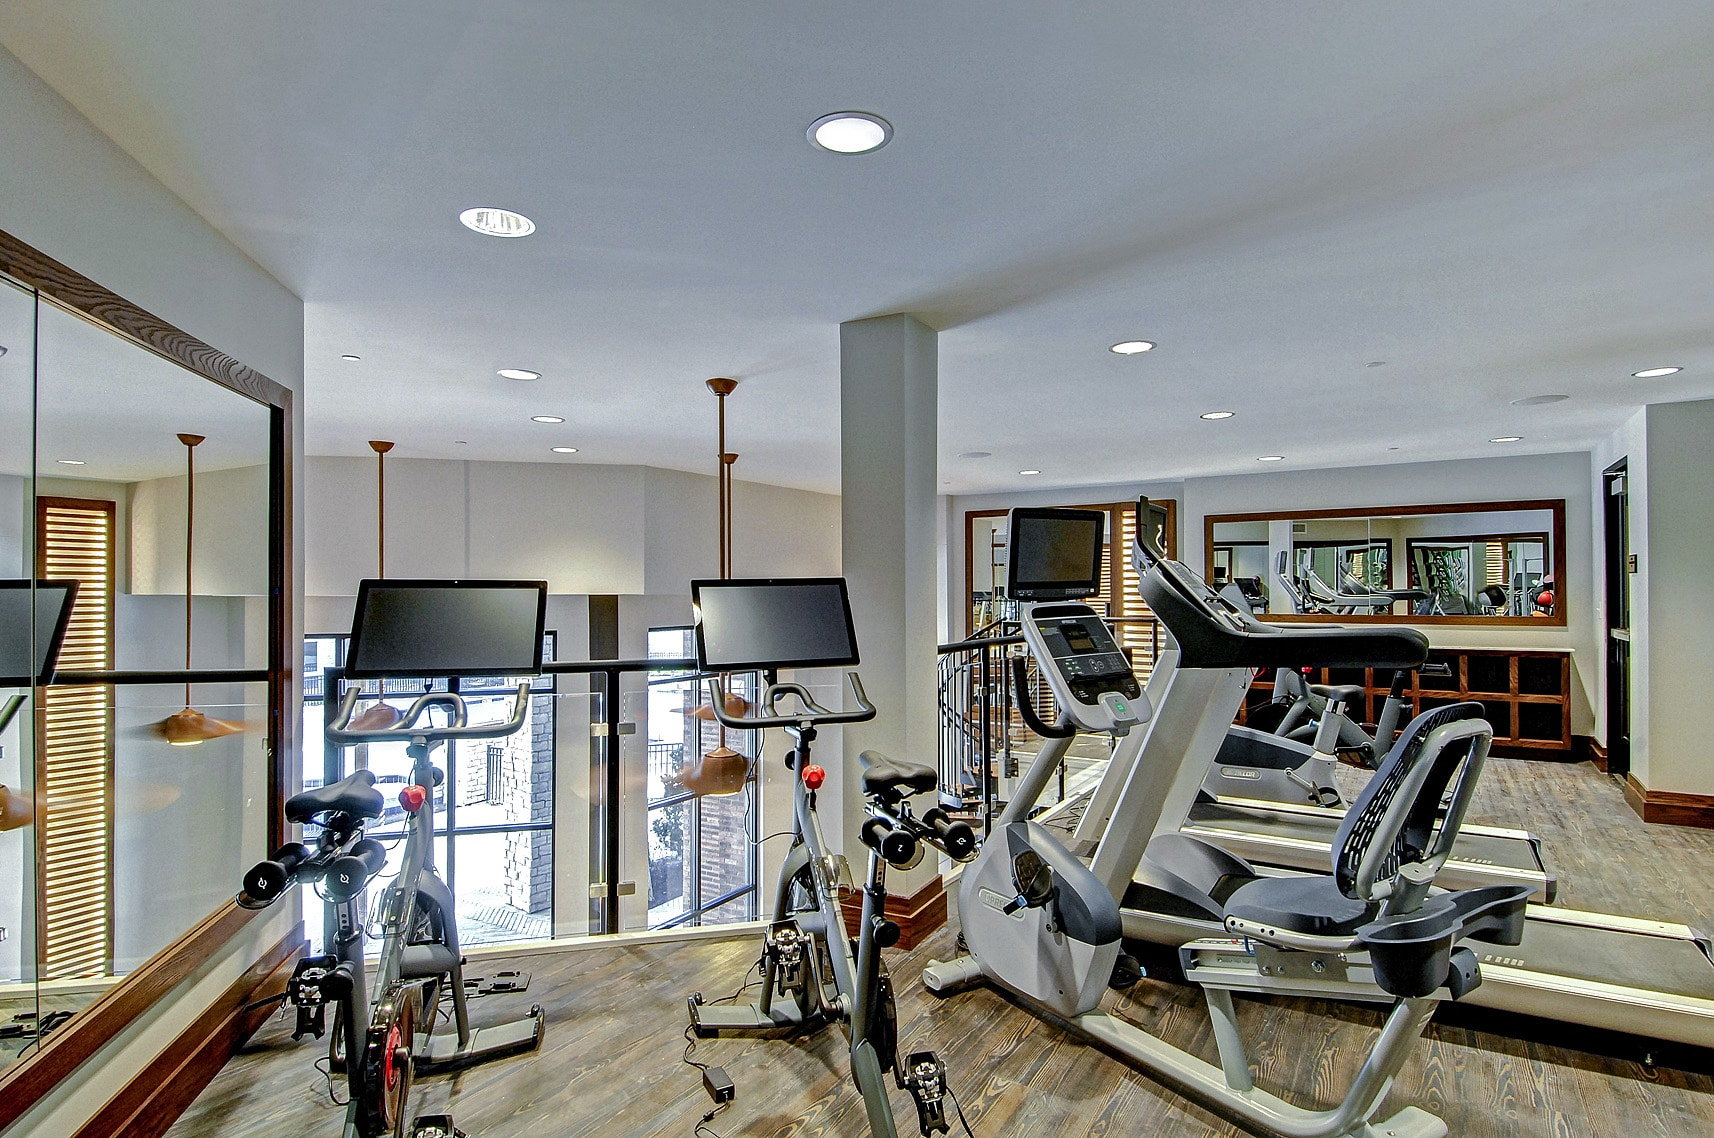 fitness center-Maybrook luxury apartments on main line__DSC2276_78_80 web